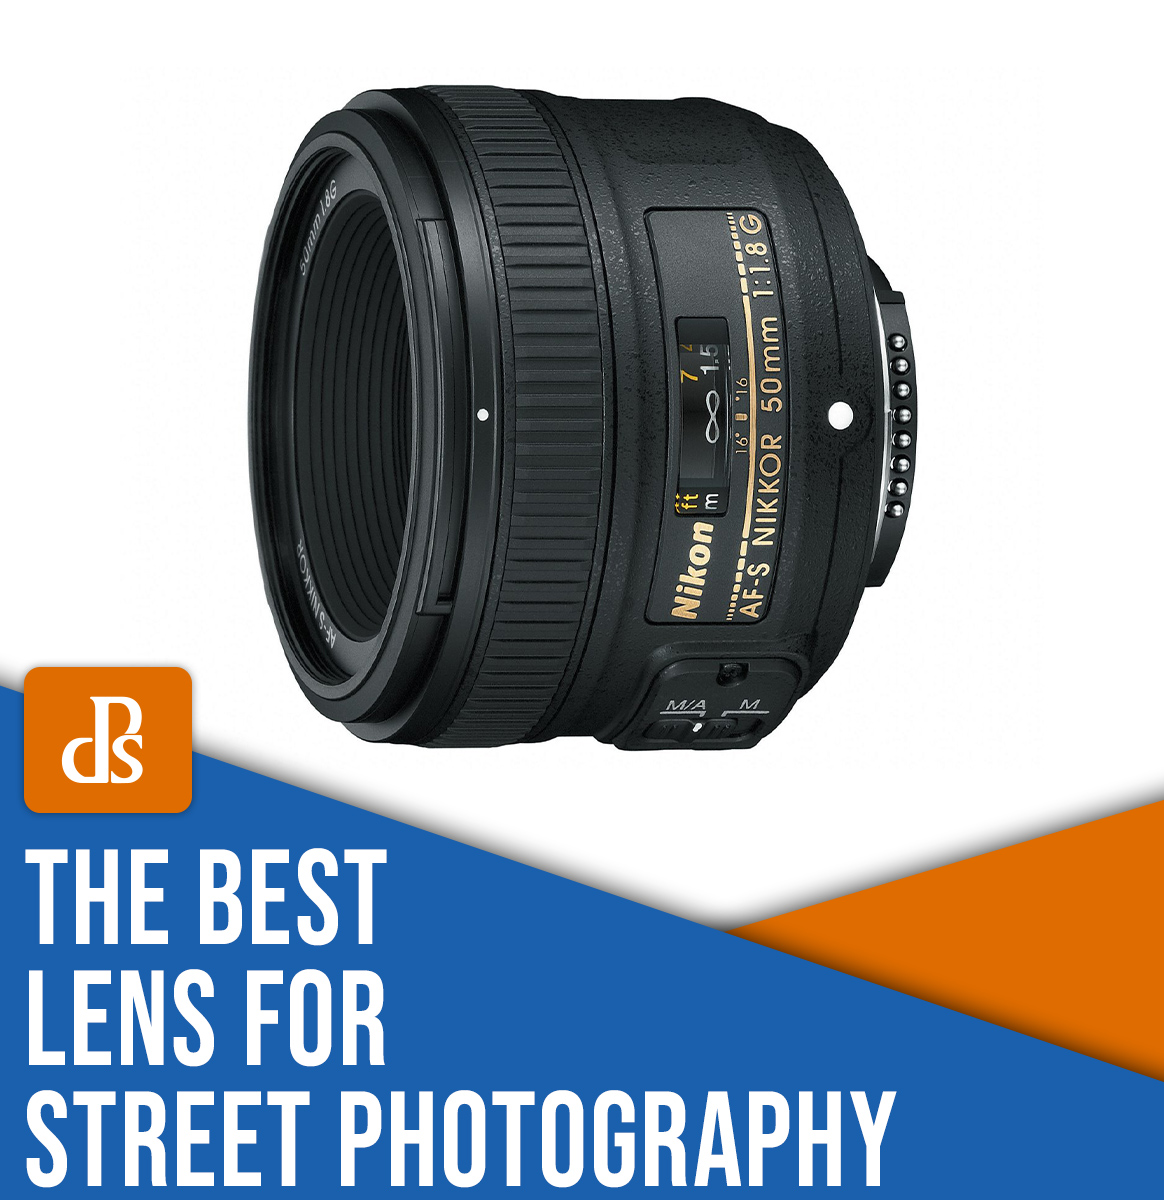 the best lens for street photography